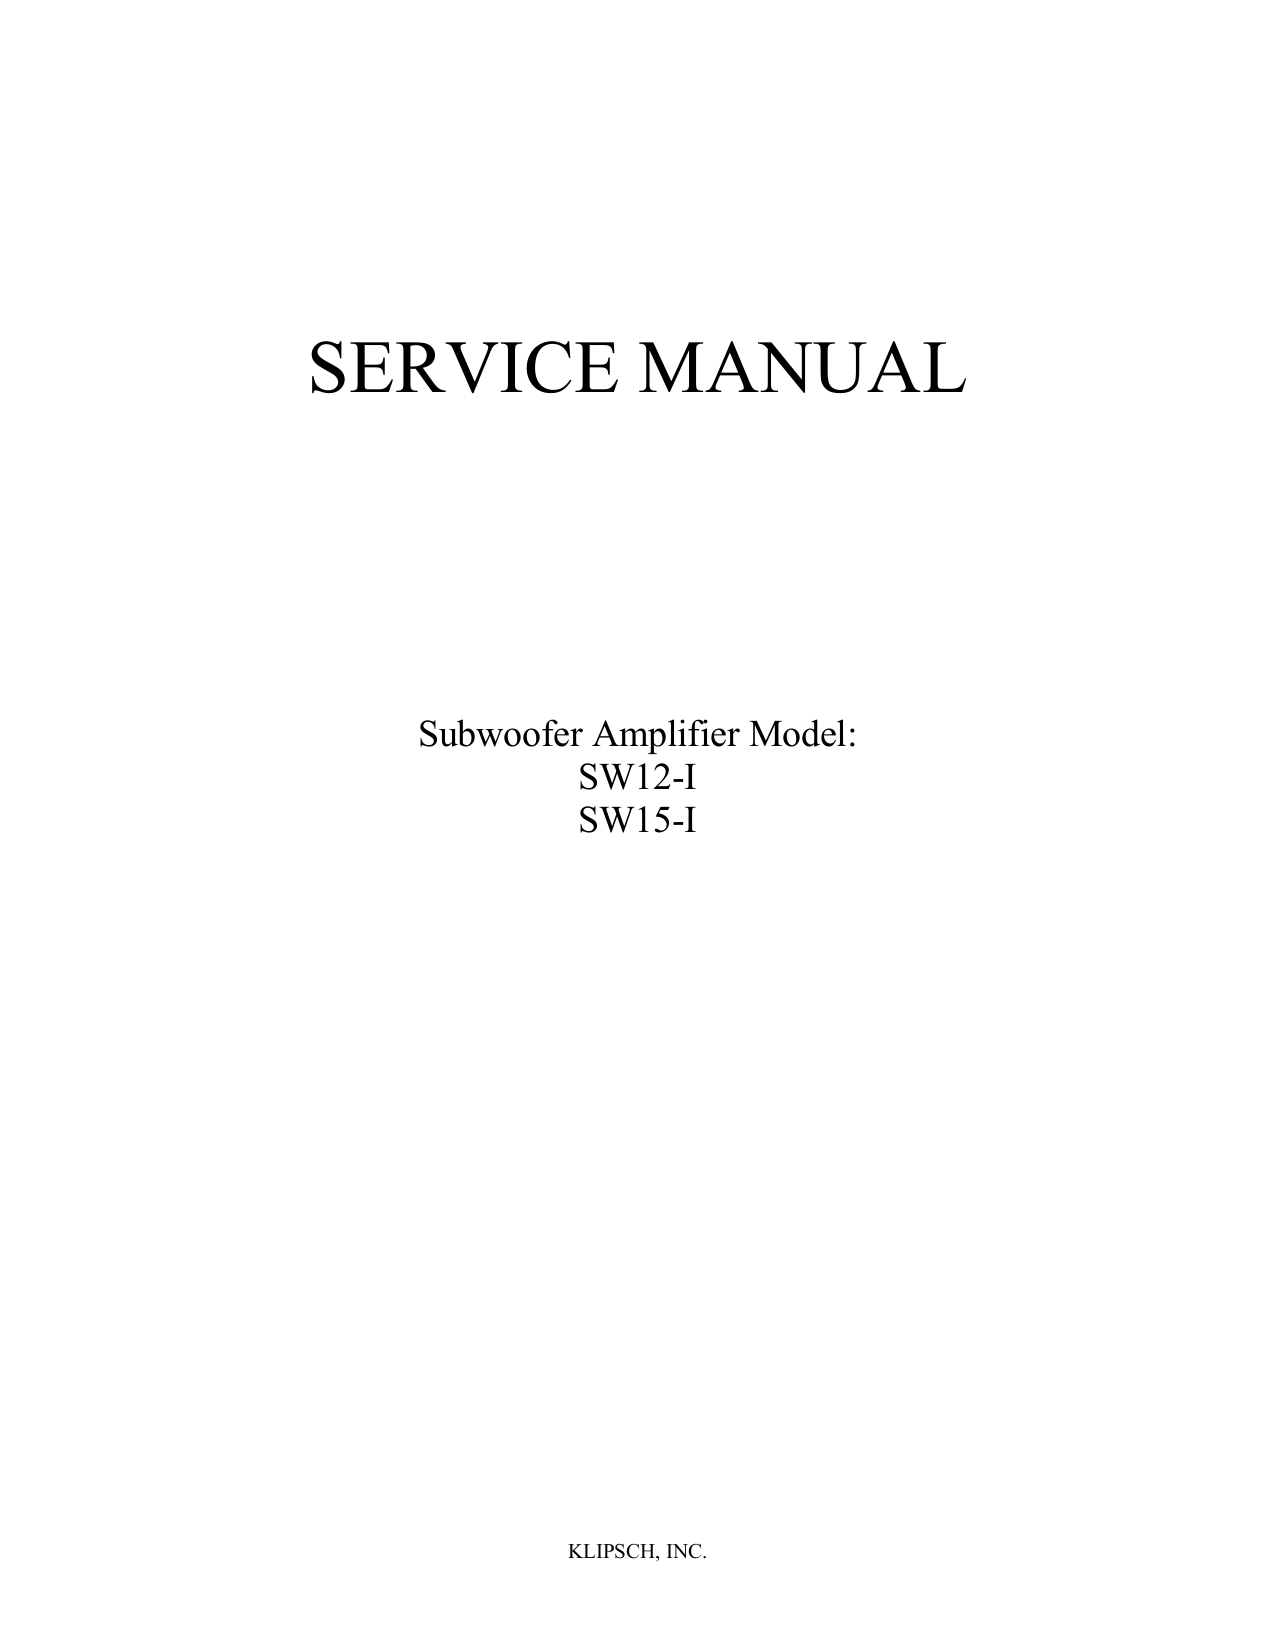 pdf for Klipsch Subwoofer KSW-10 manual